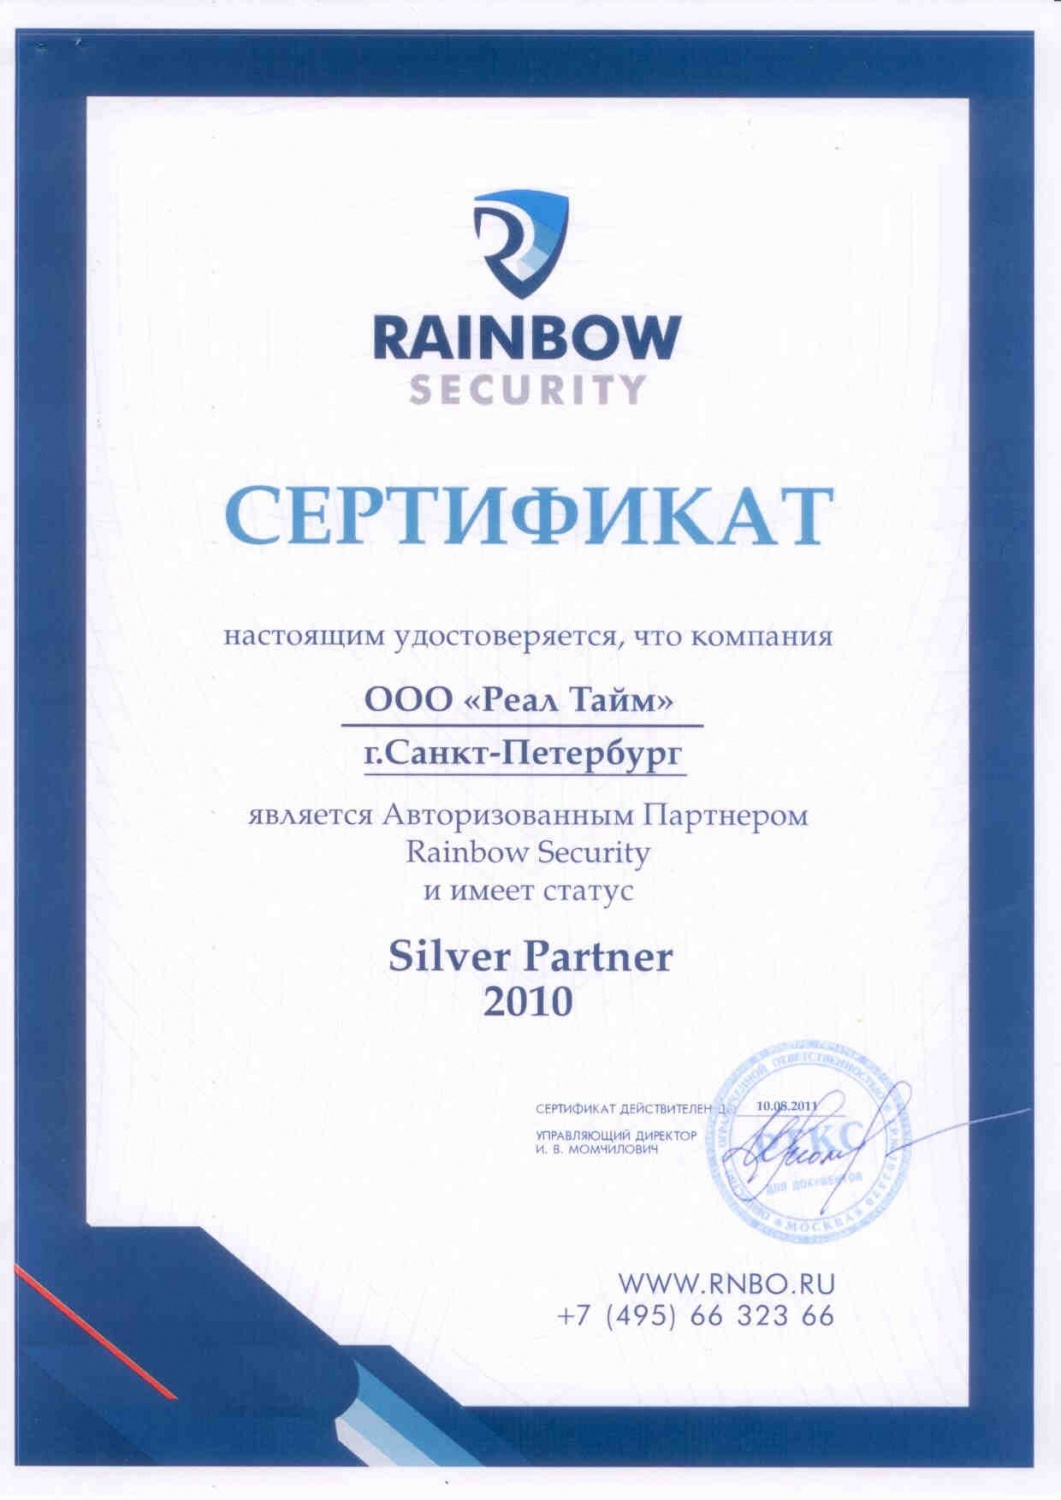 Сертификат компании Rainbow Security